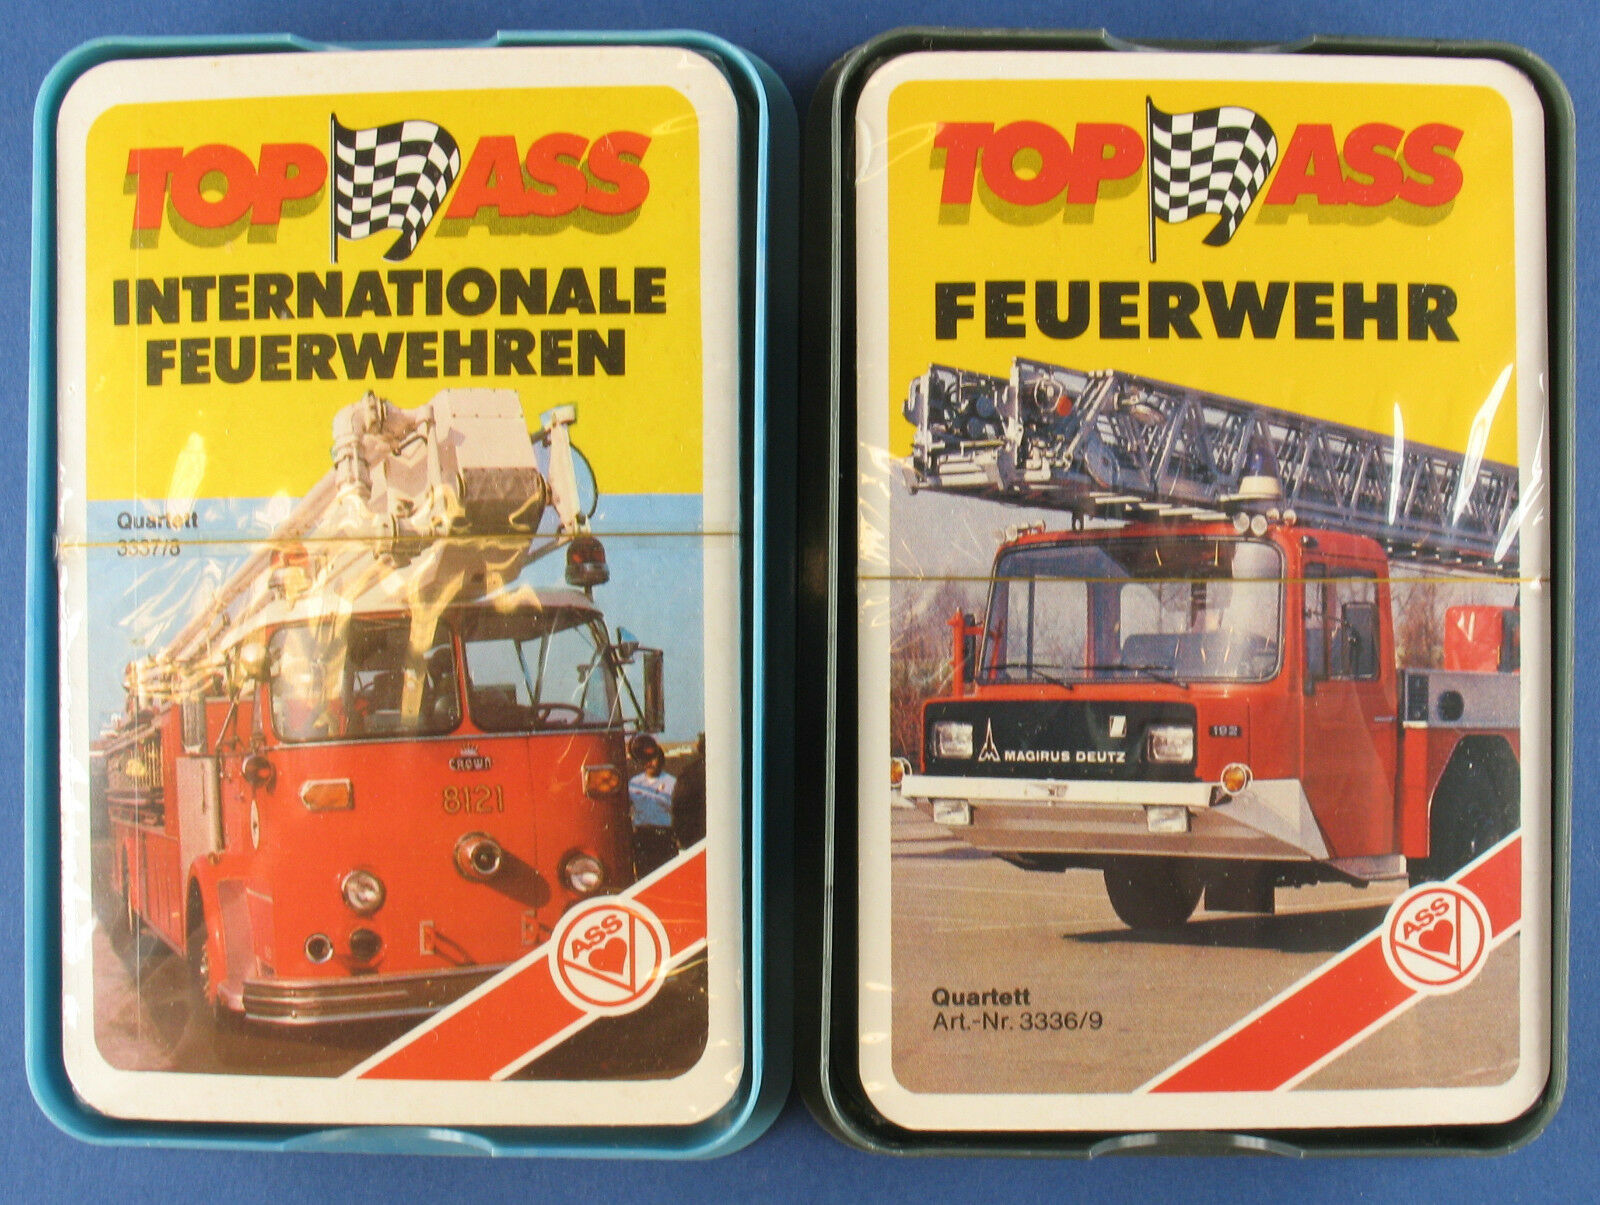 2x Quartett - Internationale Feuerwehren - ASS 3337 8 + 3336 9 - NEU in Folie